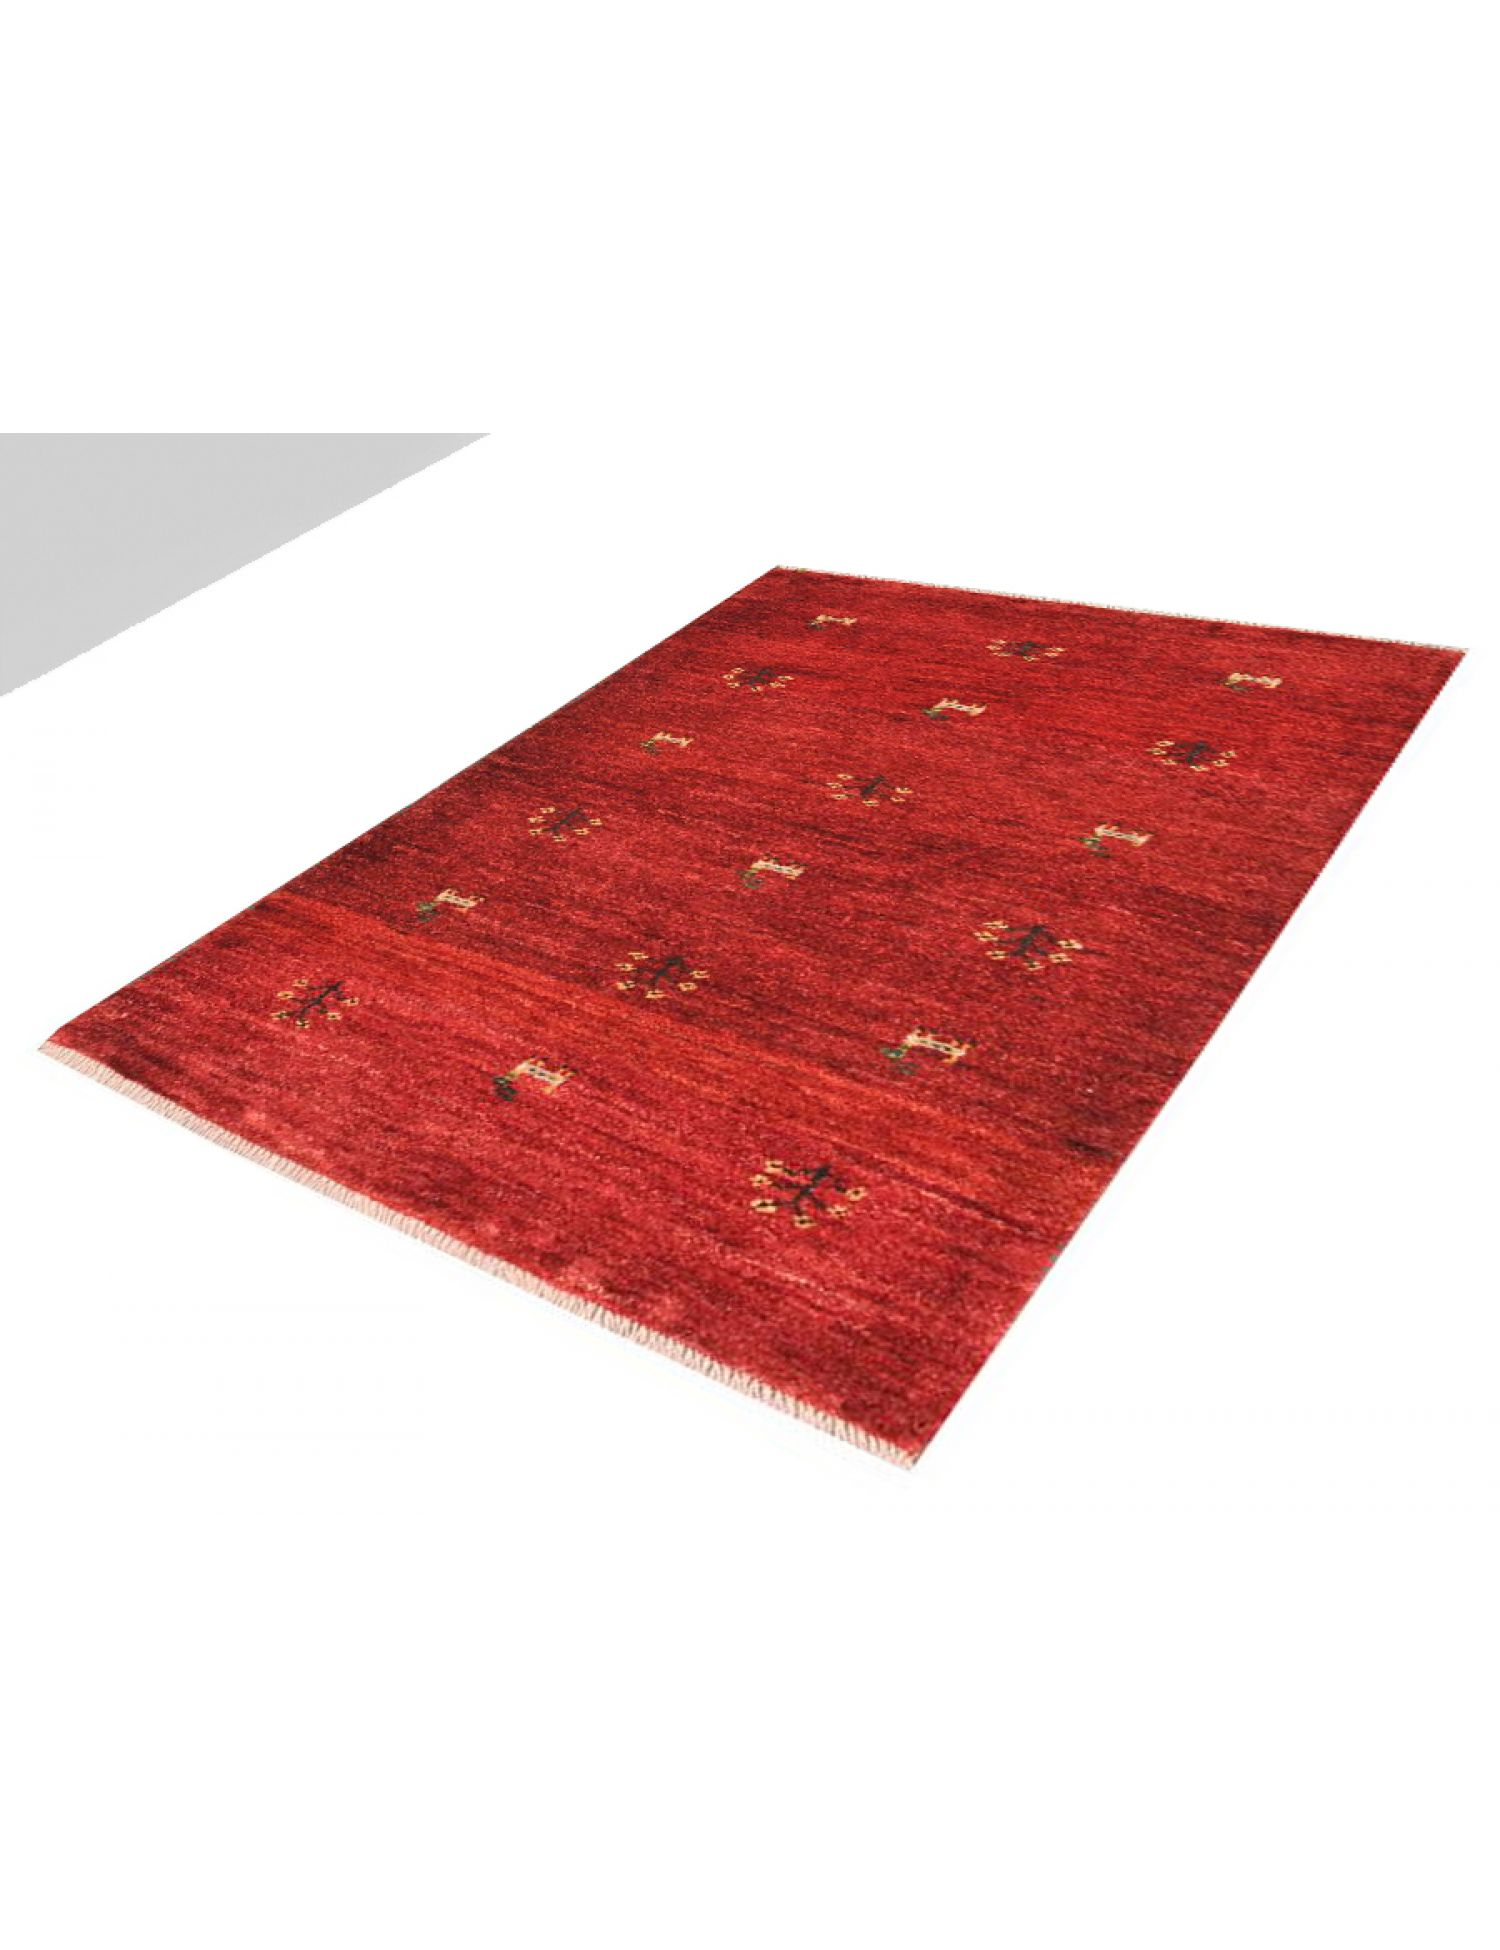 Modern carpets  red <br/>120 x 77 cm